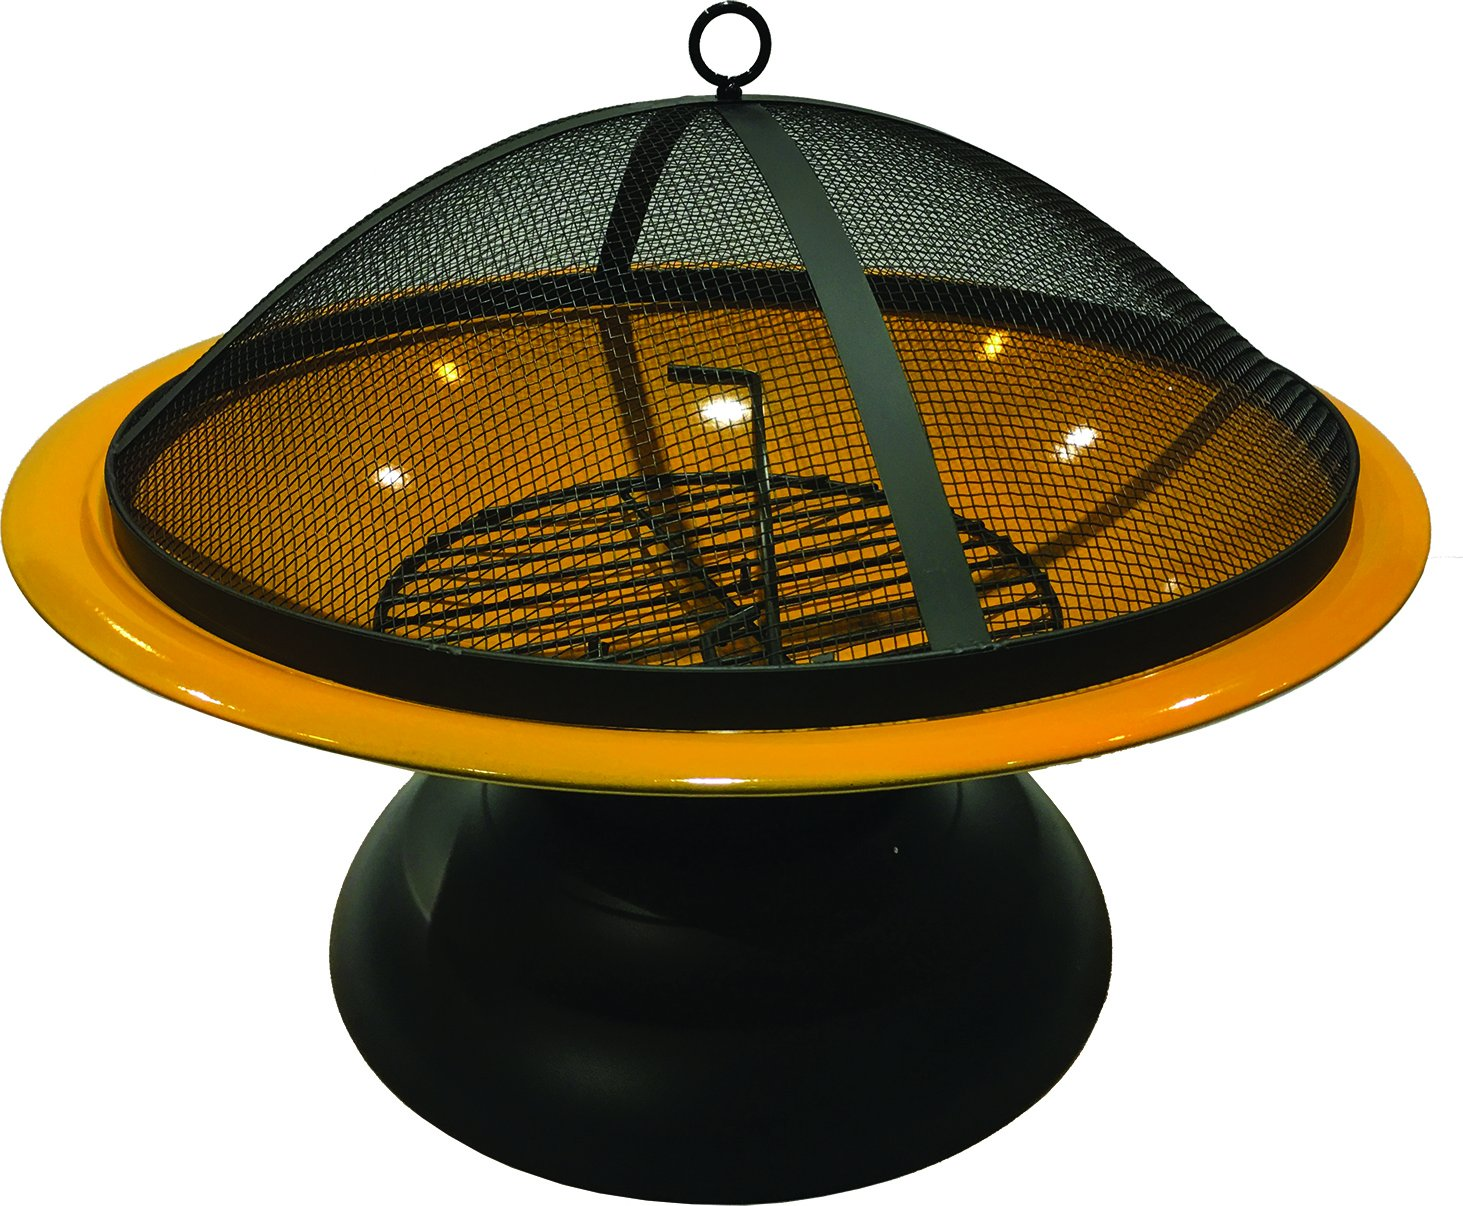 Harbor Gardens LF273AORG Vesta Orange Enameled Fire Bowl/Pit, Powder Coated Steel - Heat-resistant, powder coated Steel bowl Mesh fire screen with high temperature paint Screen Lift tool and wood grate included - patio, outdoor-decor, fire-pits-outdoor-fireplaces - 81CQJ2tI4hL -